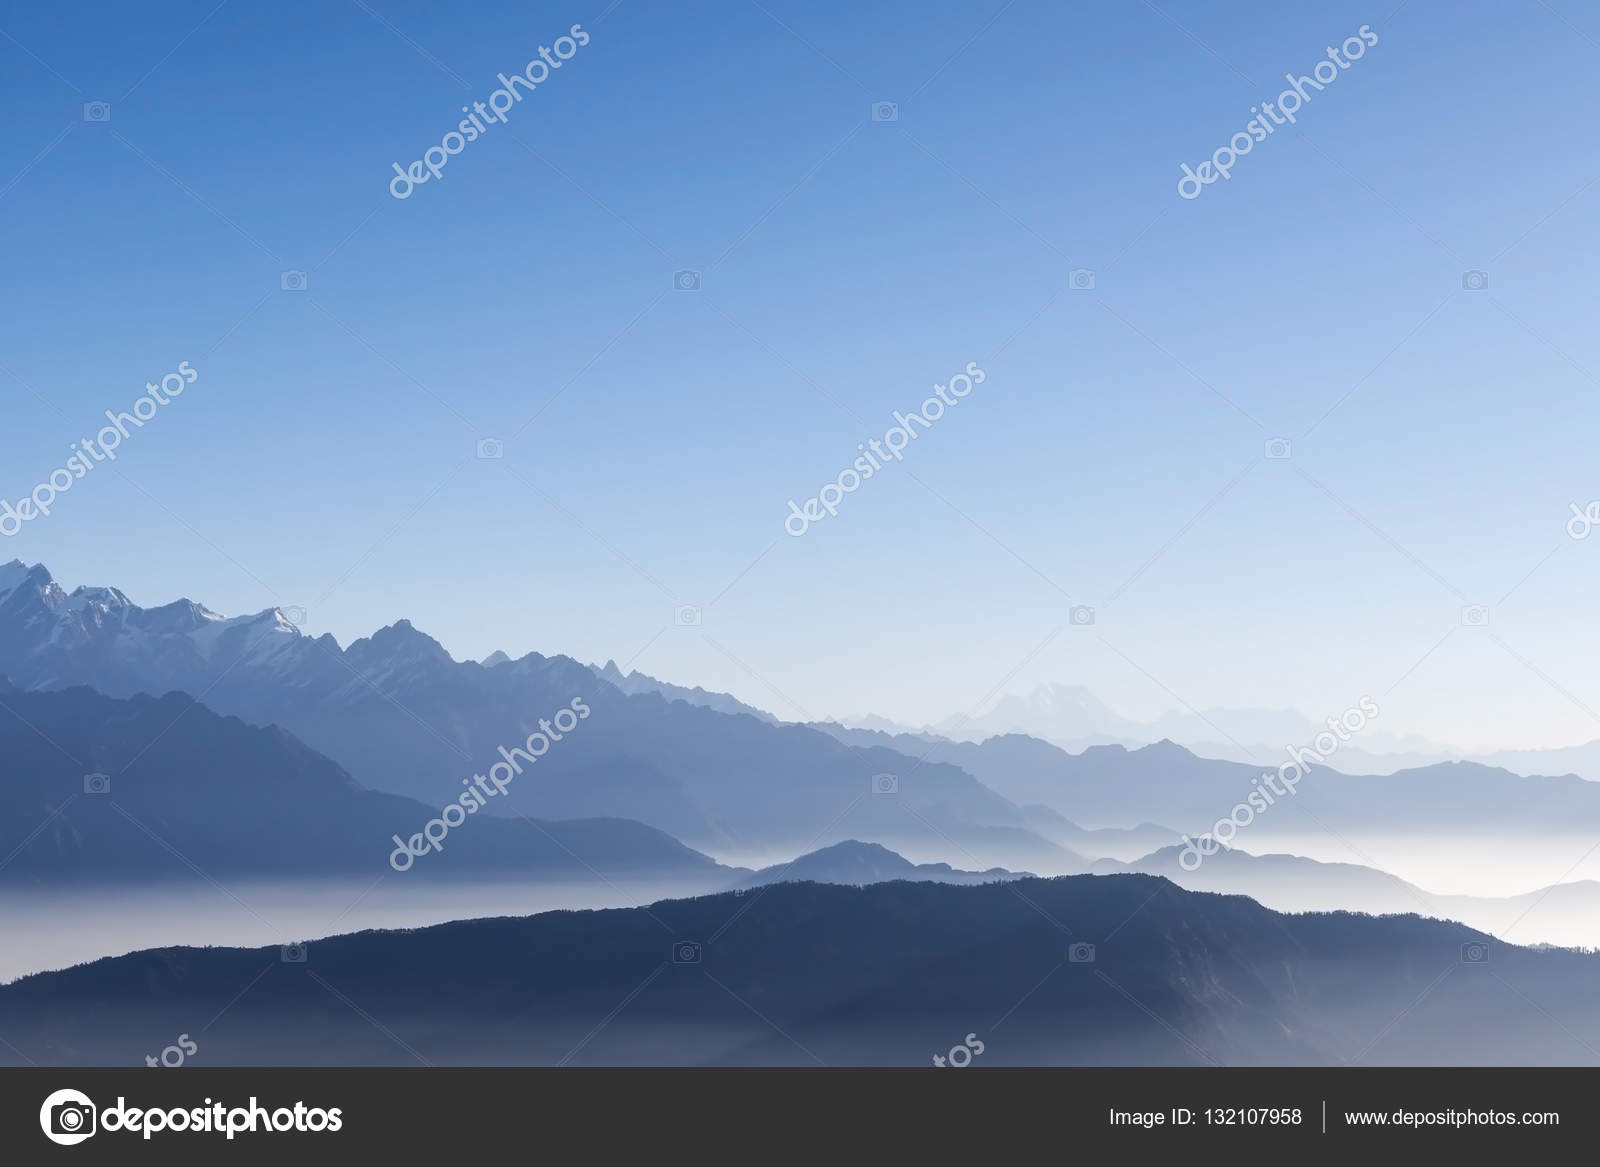 foggy mountain range background with blue sky and white